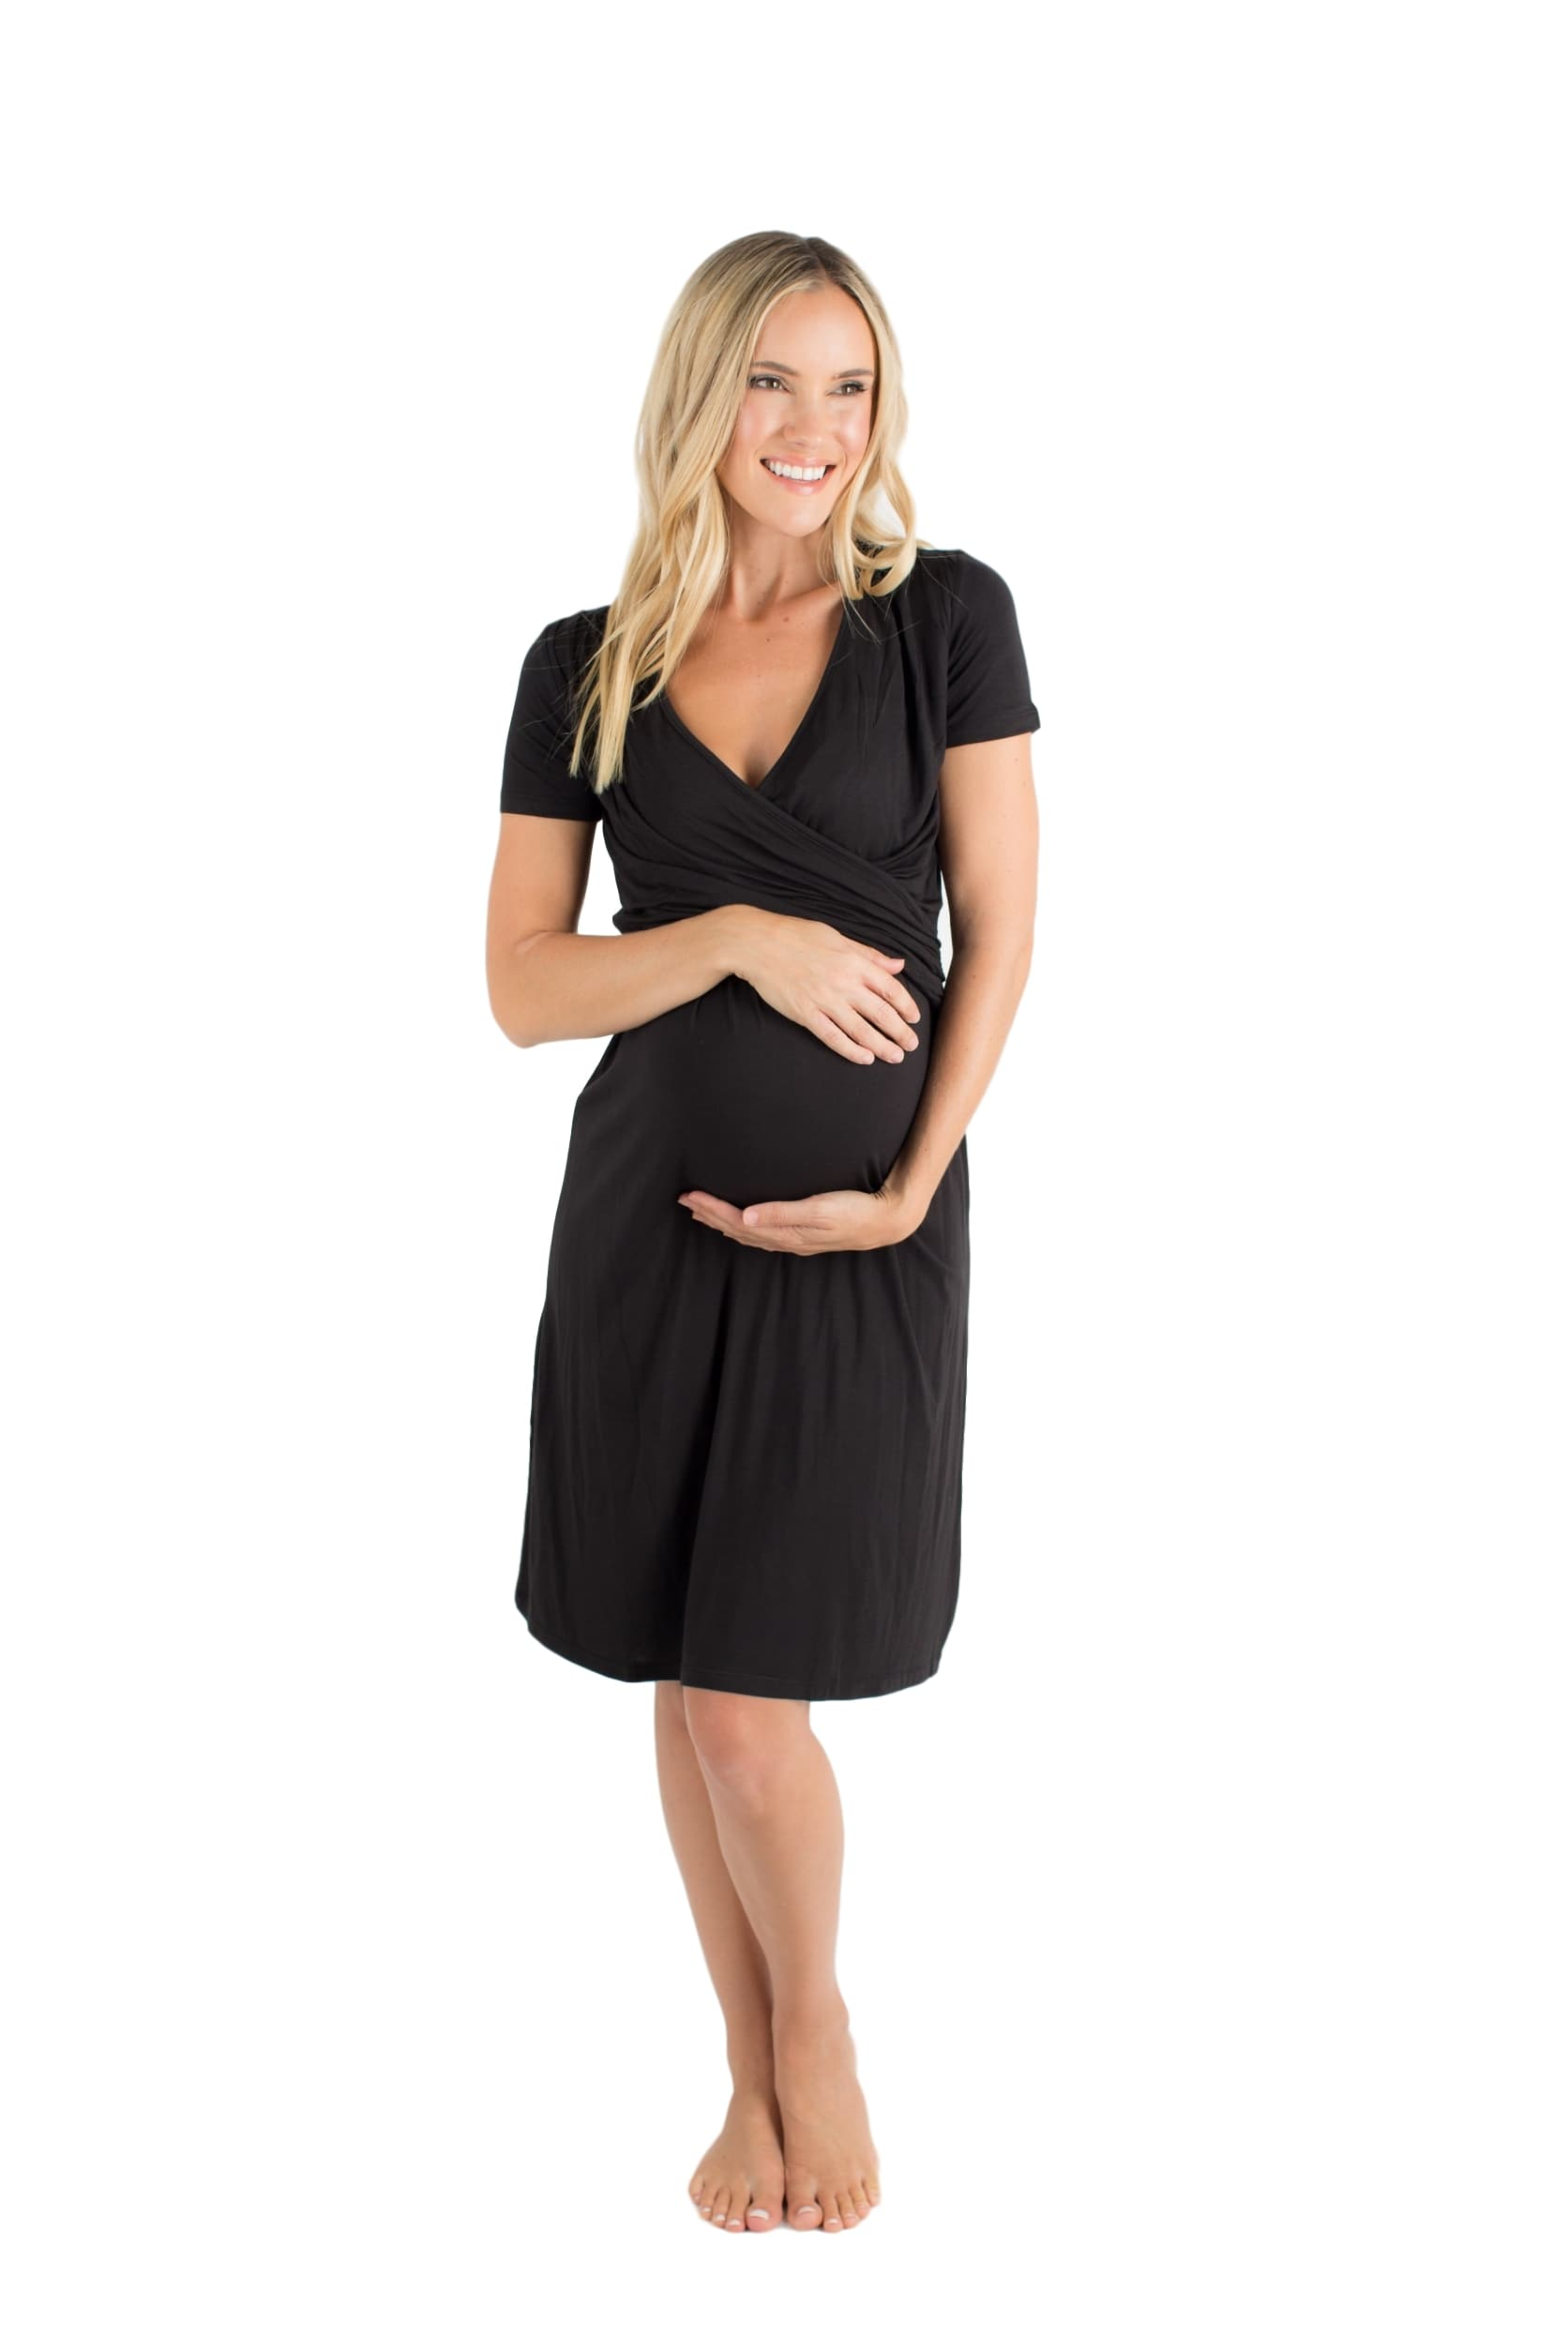 Black Maternity & Nursing Dress, super soft. Wear with flip flops or to sleep, this little beauty is your new favorite pregnancy dress.